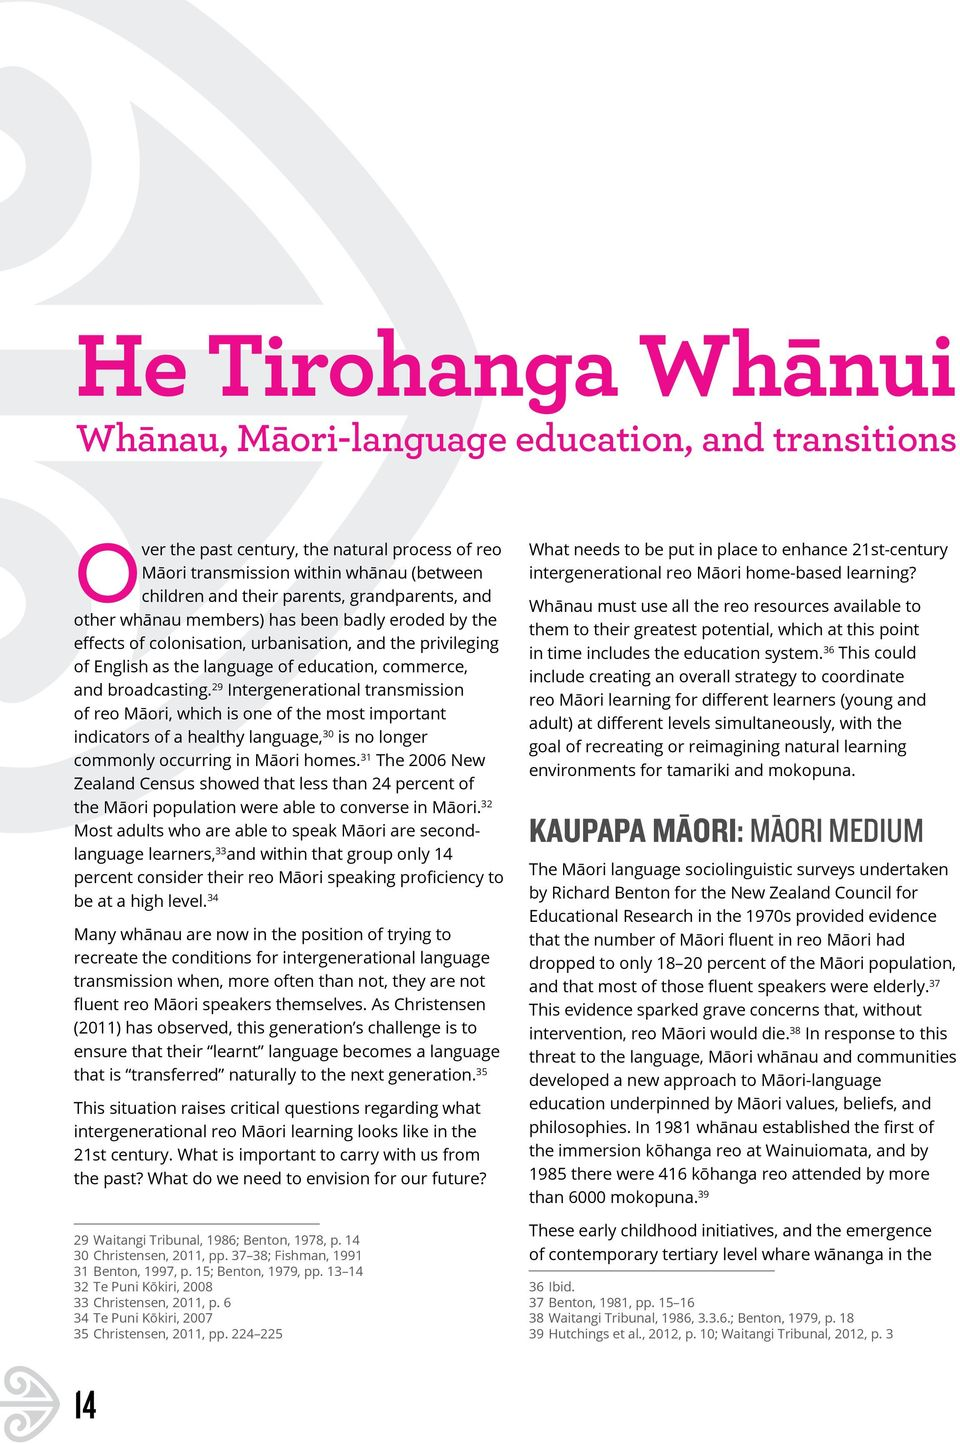 29 Intergenerational transmission of reo Māori, which is one of the most important indicators of a healthy language, 30 is no longer commonly occurring in Māori homes.